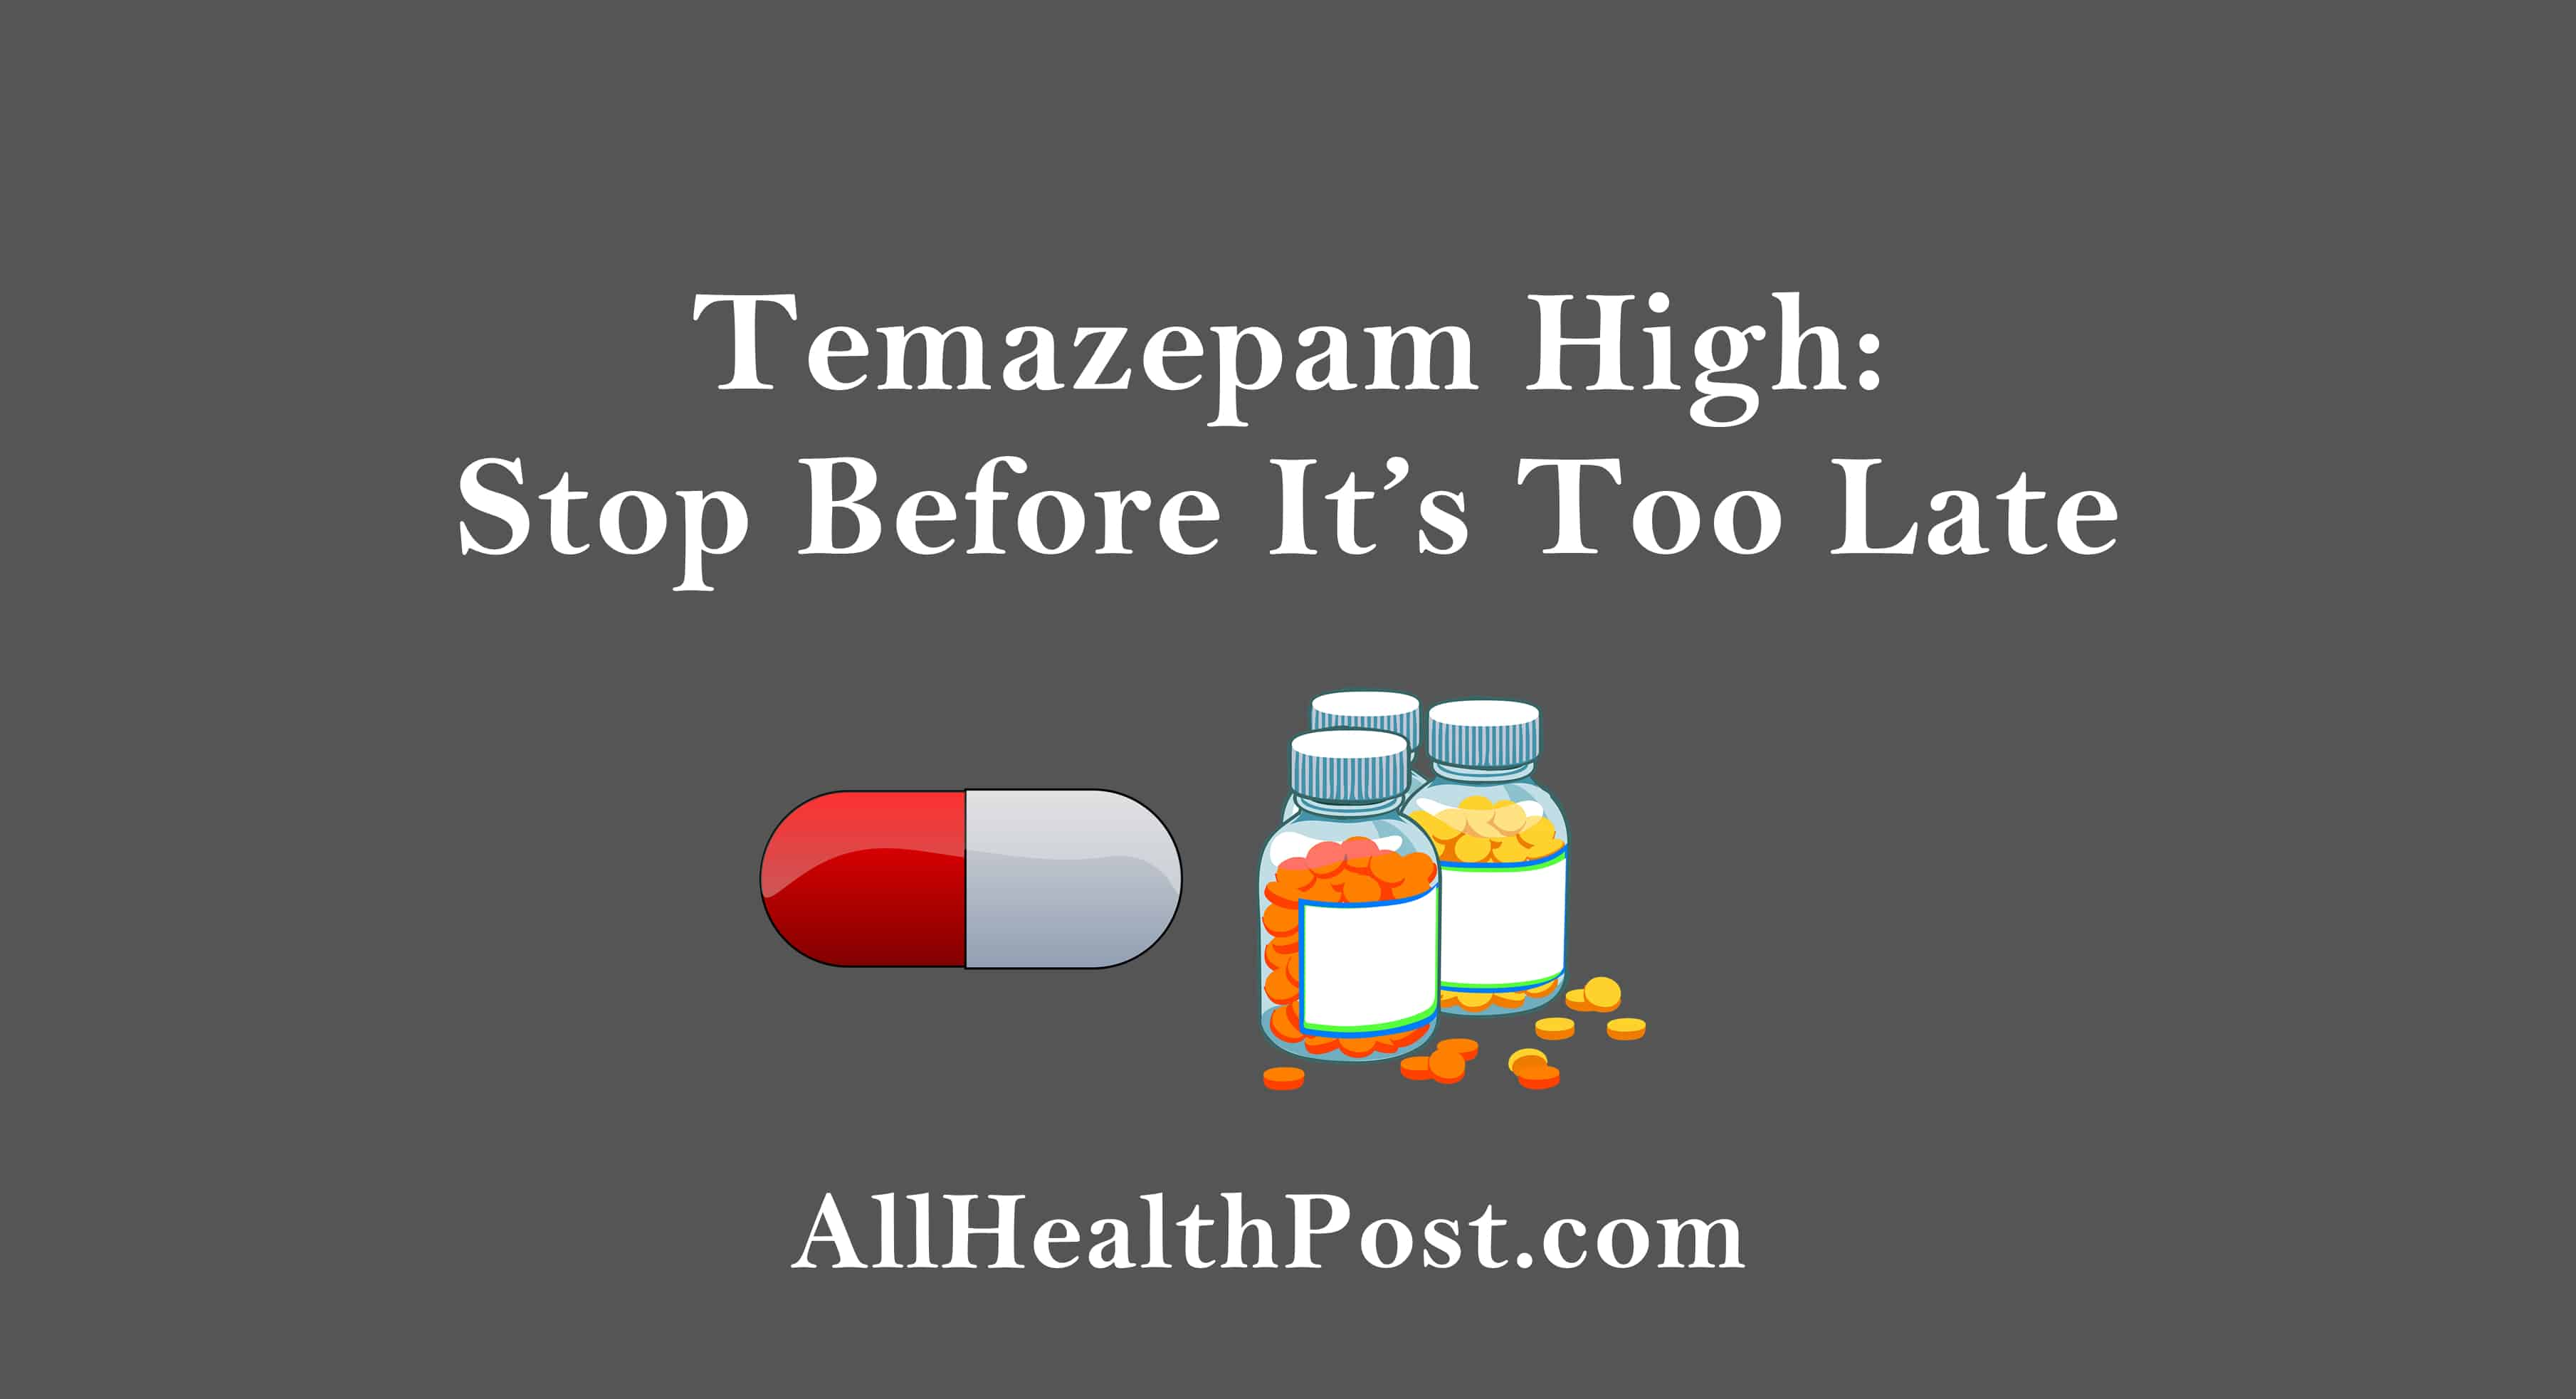 Temazepam High – Stop Before It's Too Late